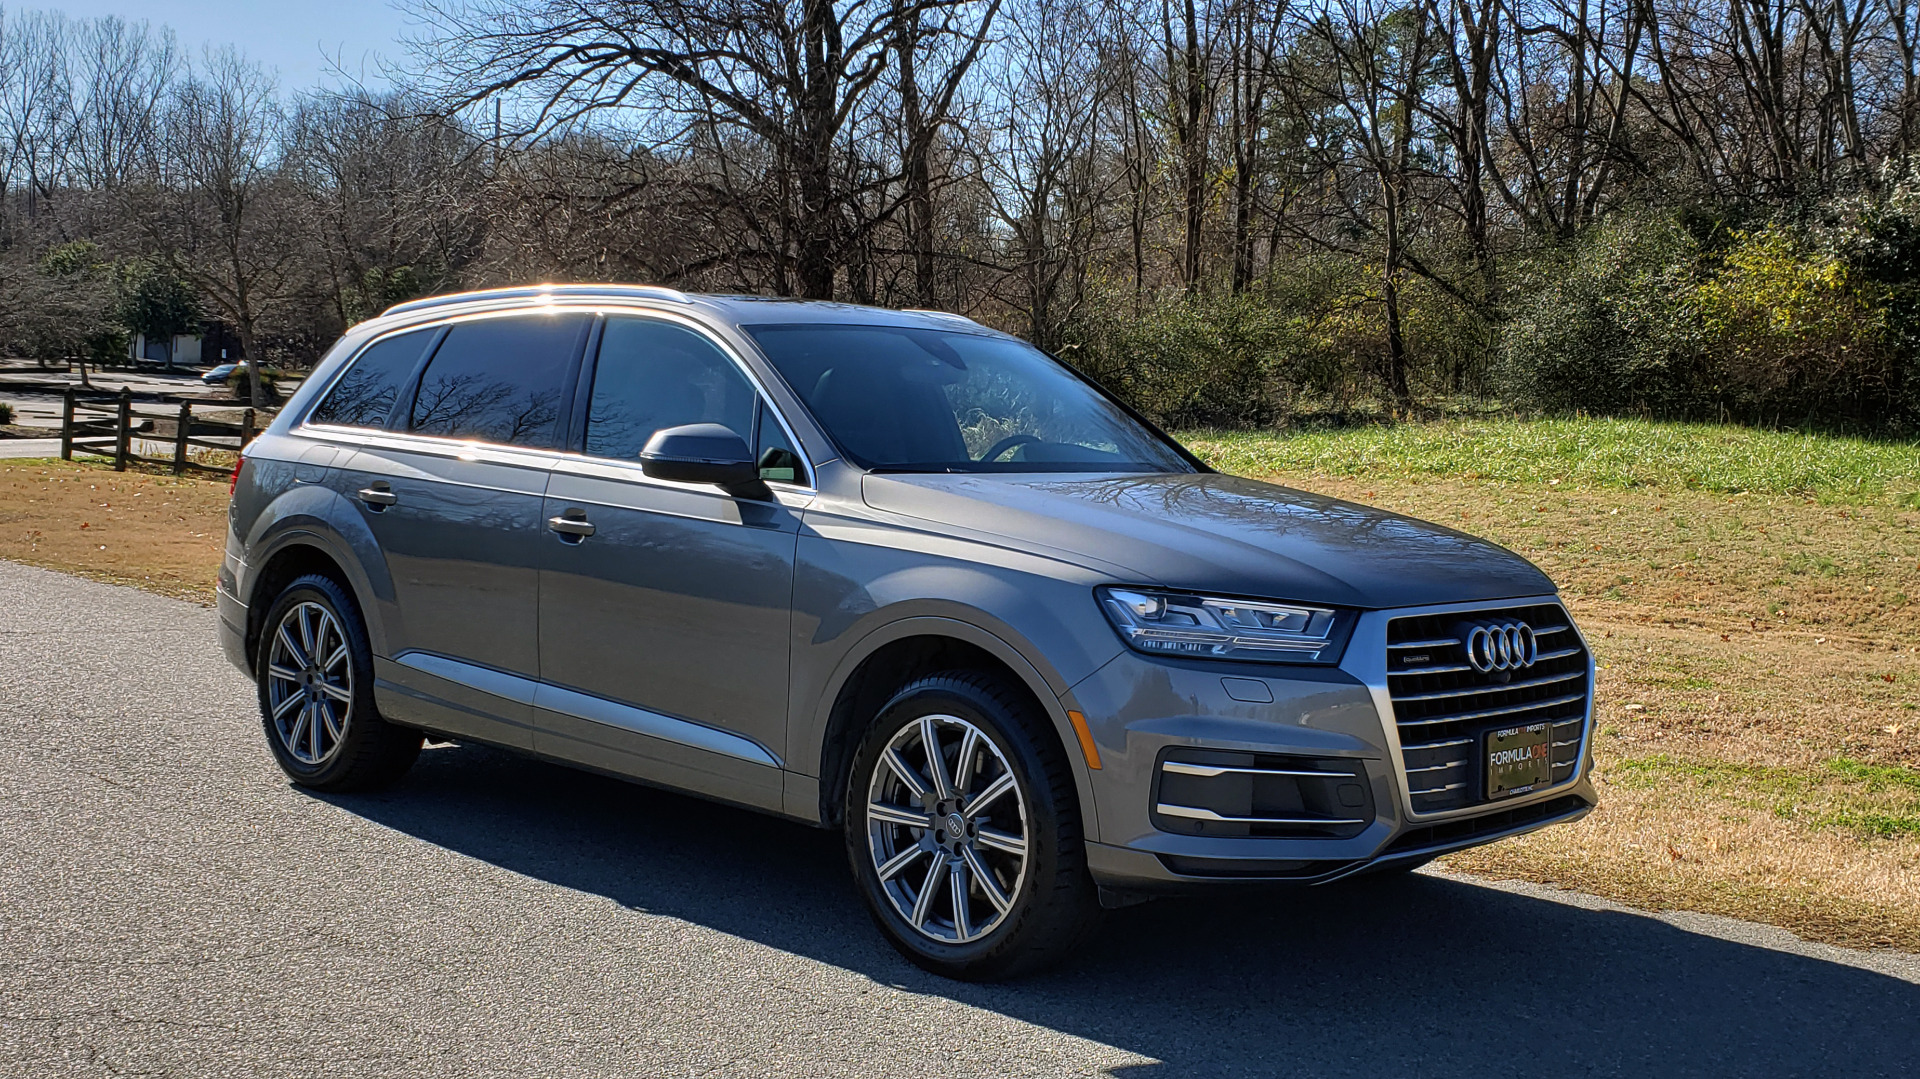 Used 2017 Audi Q7 PREMIUM PLUS / 2.0T TIPTRONIC / NAV / PANO-ROOF / 3-ROW / REARVIEW for sale $33,999 at Formula Imports in Charlotte NC 28227 6